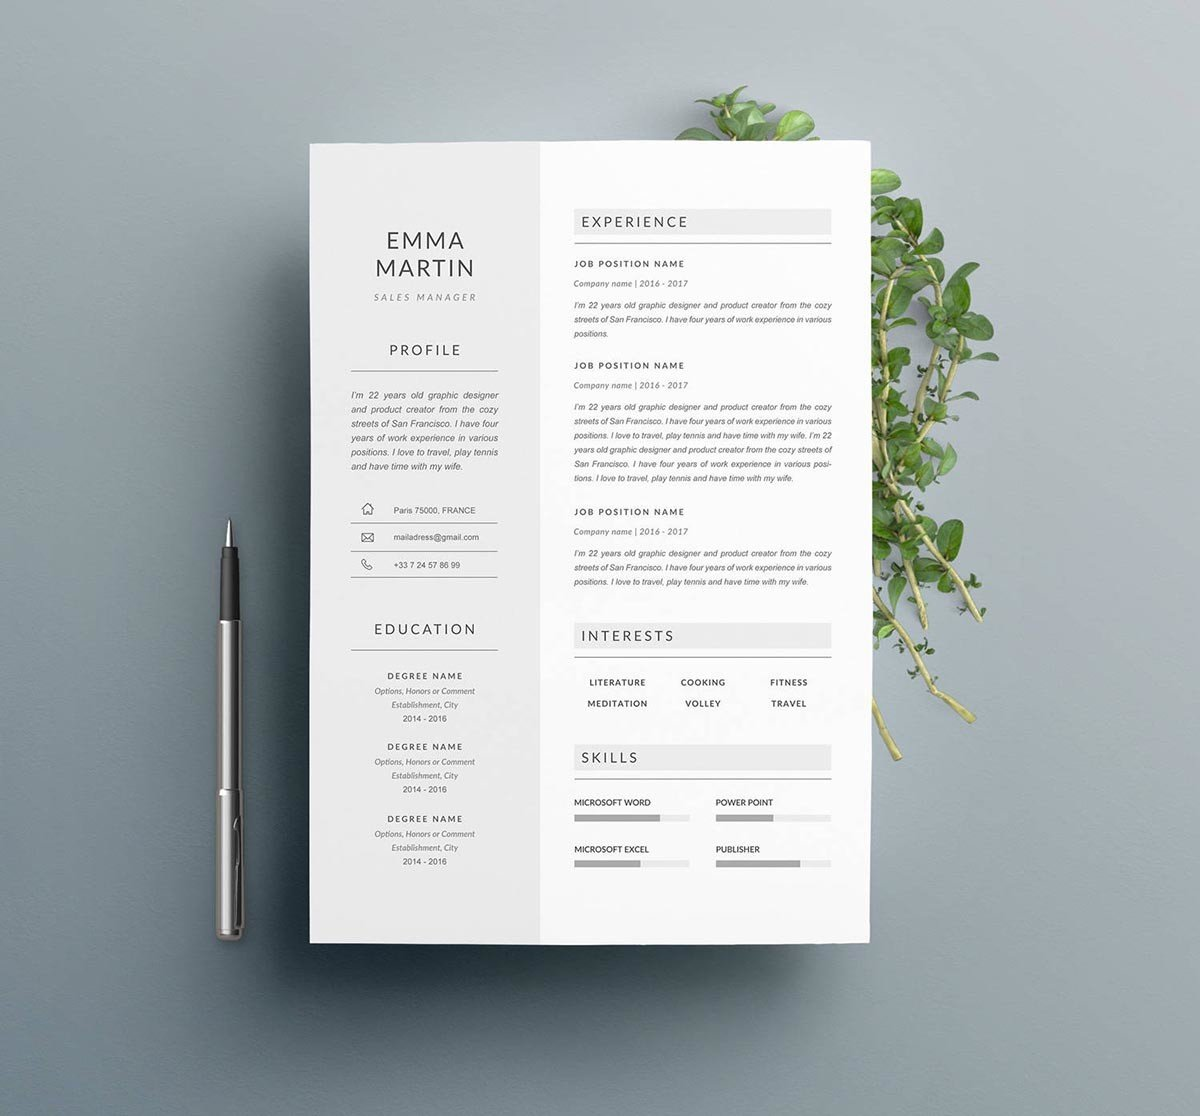 This resume template has a. 13 Photoshop Illustrator Indesign Resume Templates